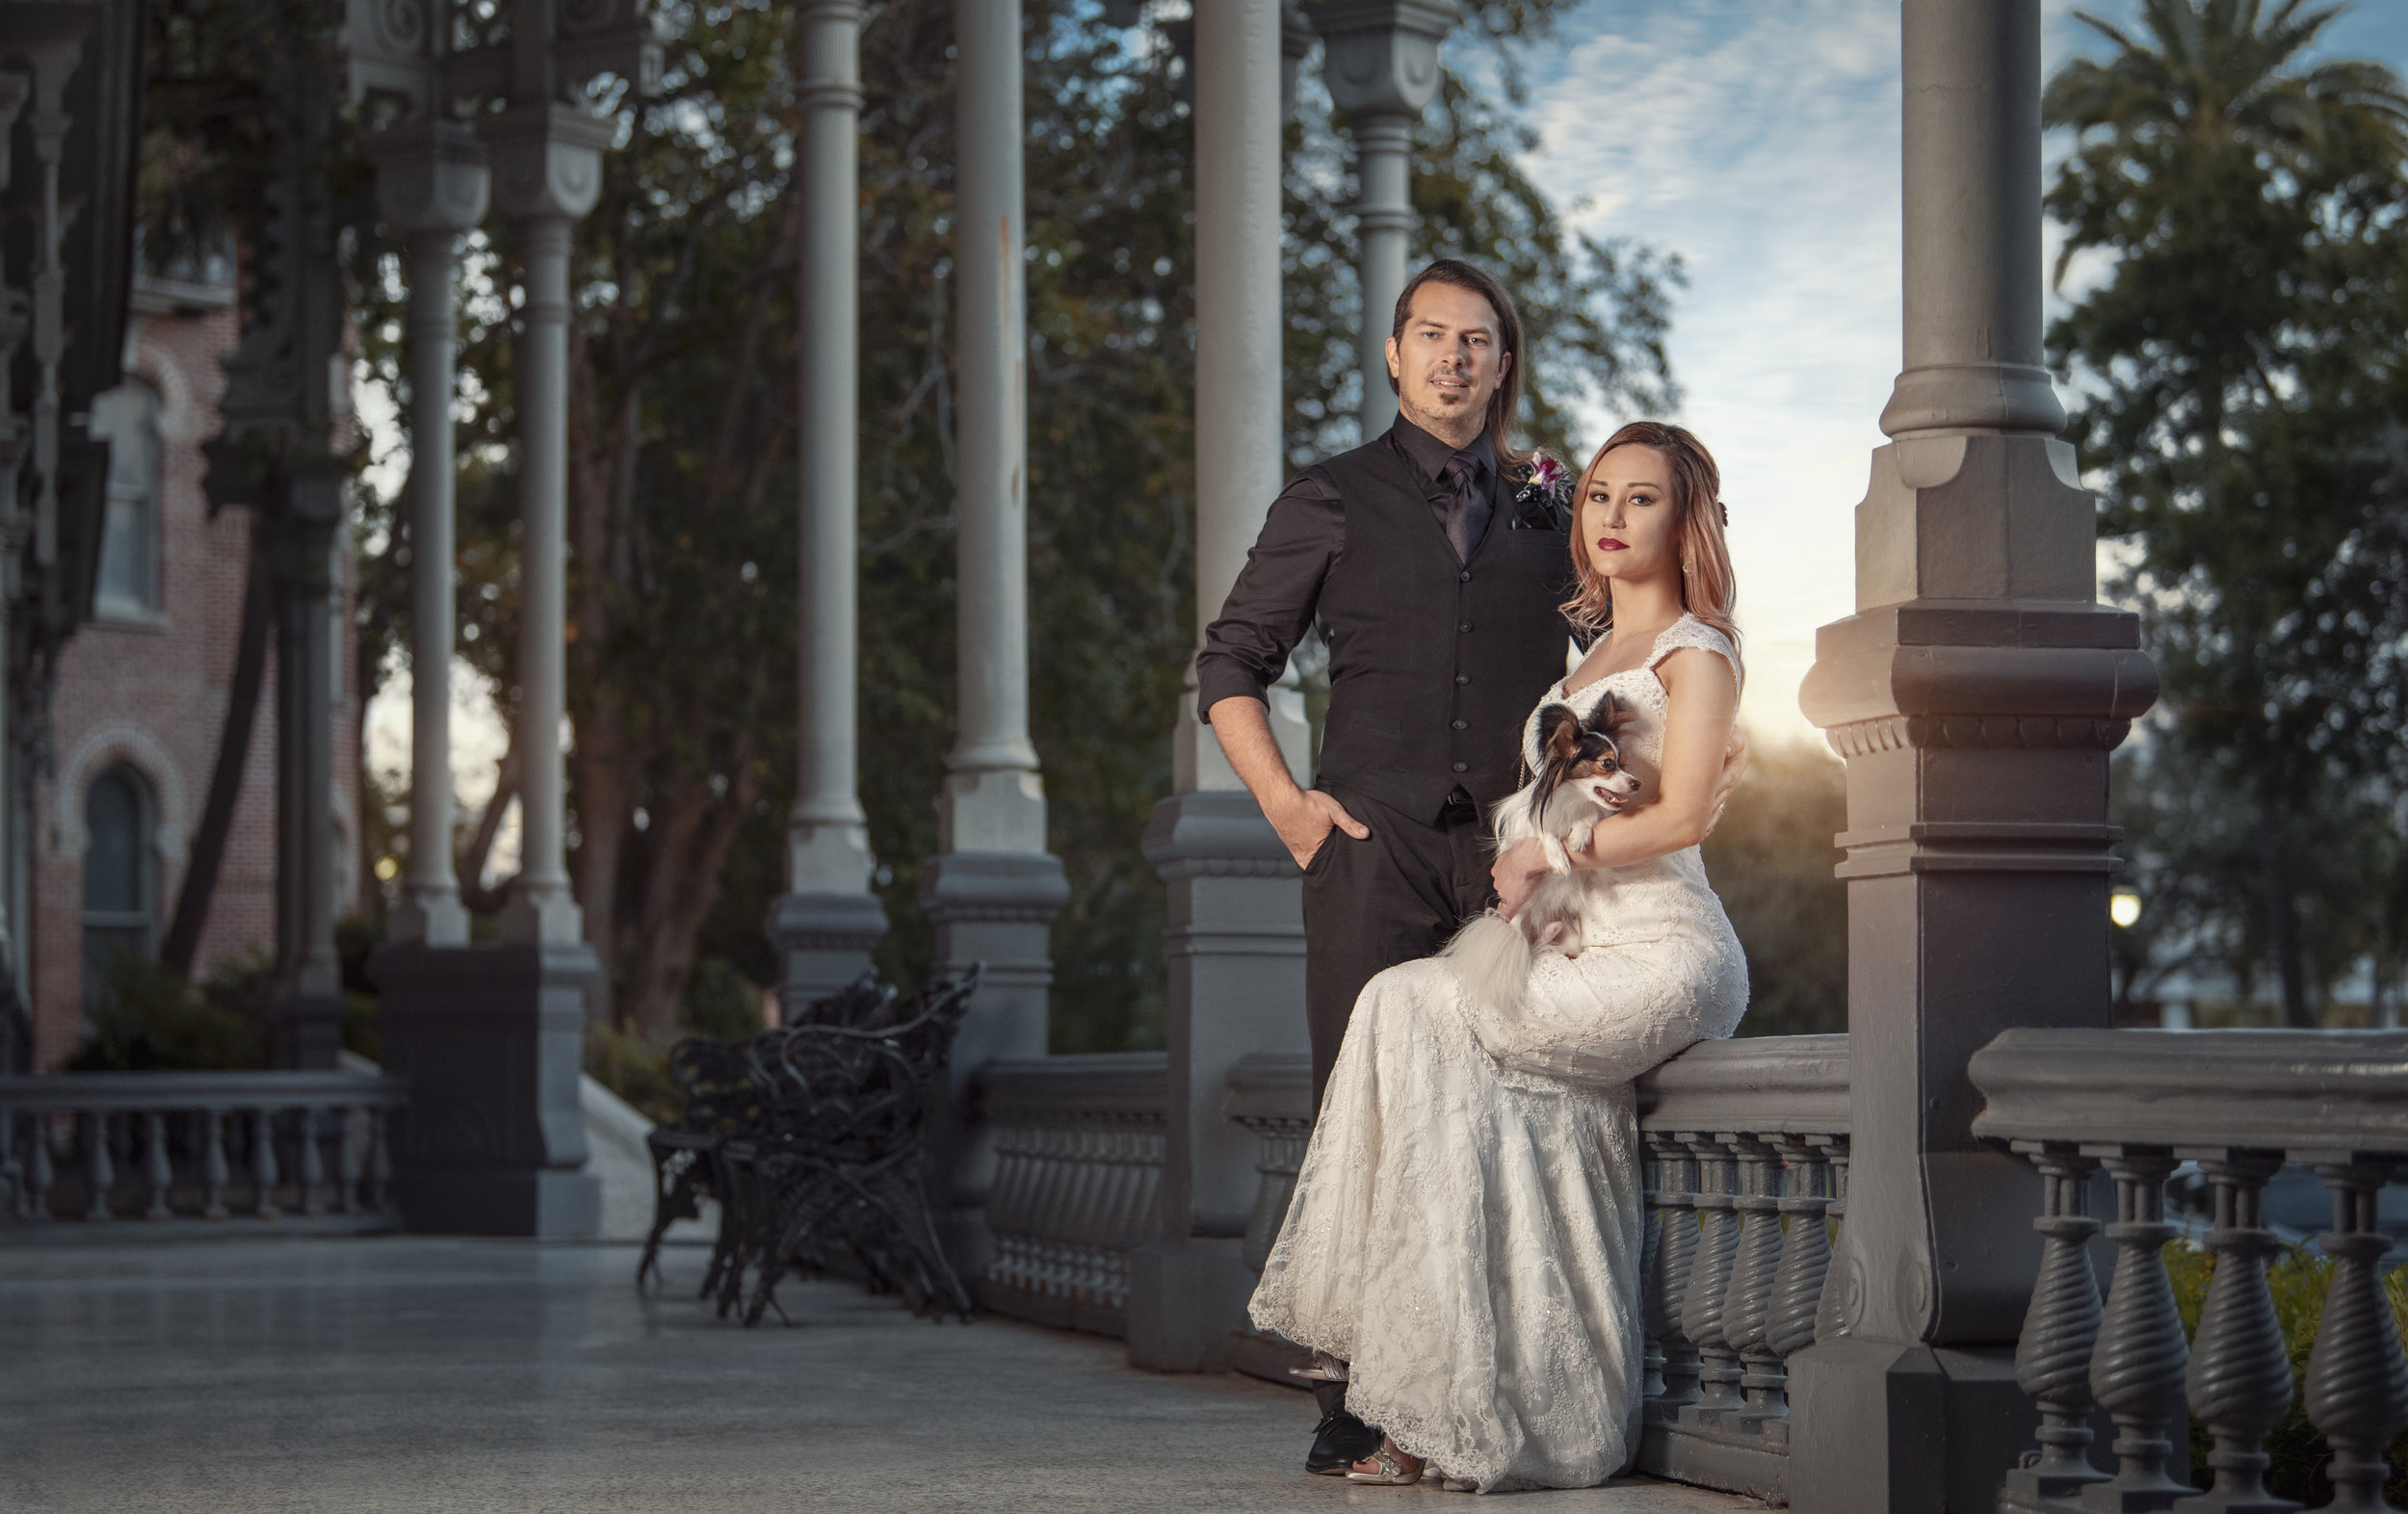 Wedding Photography | Tampa, FL -